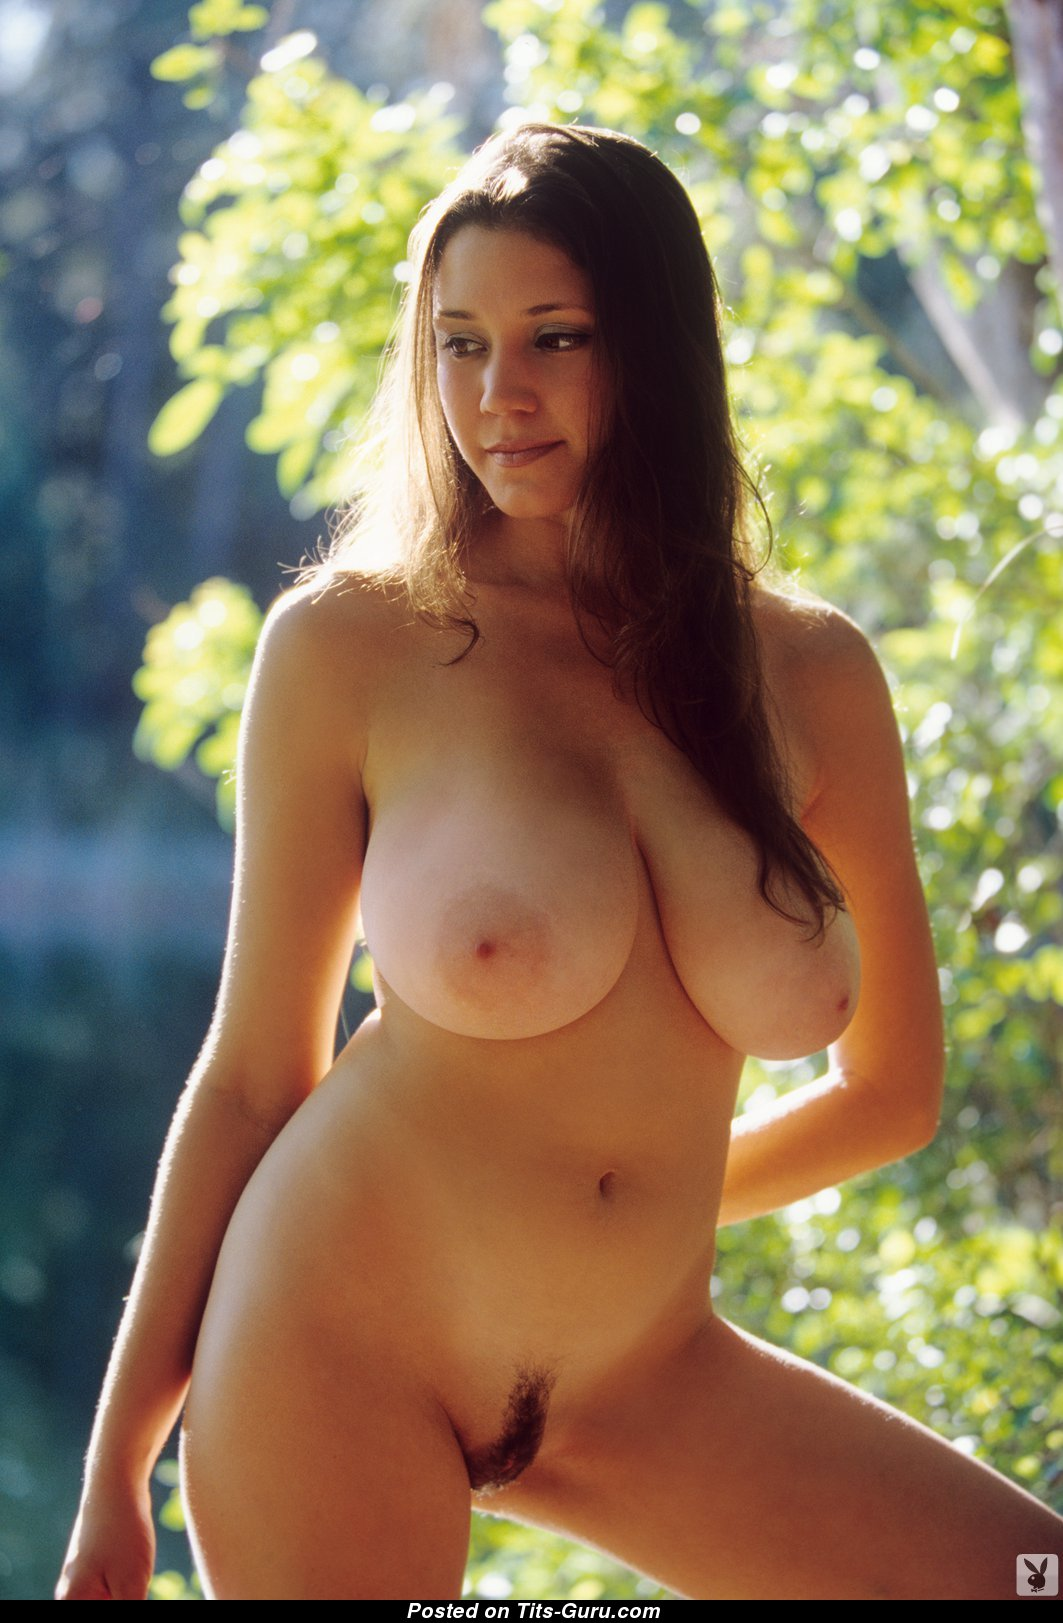 Hot puerto rican women nude